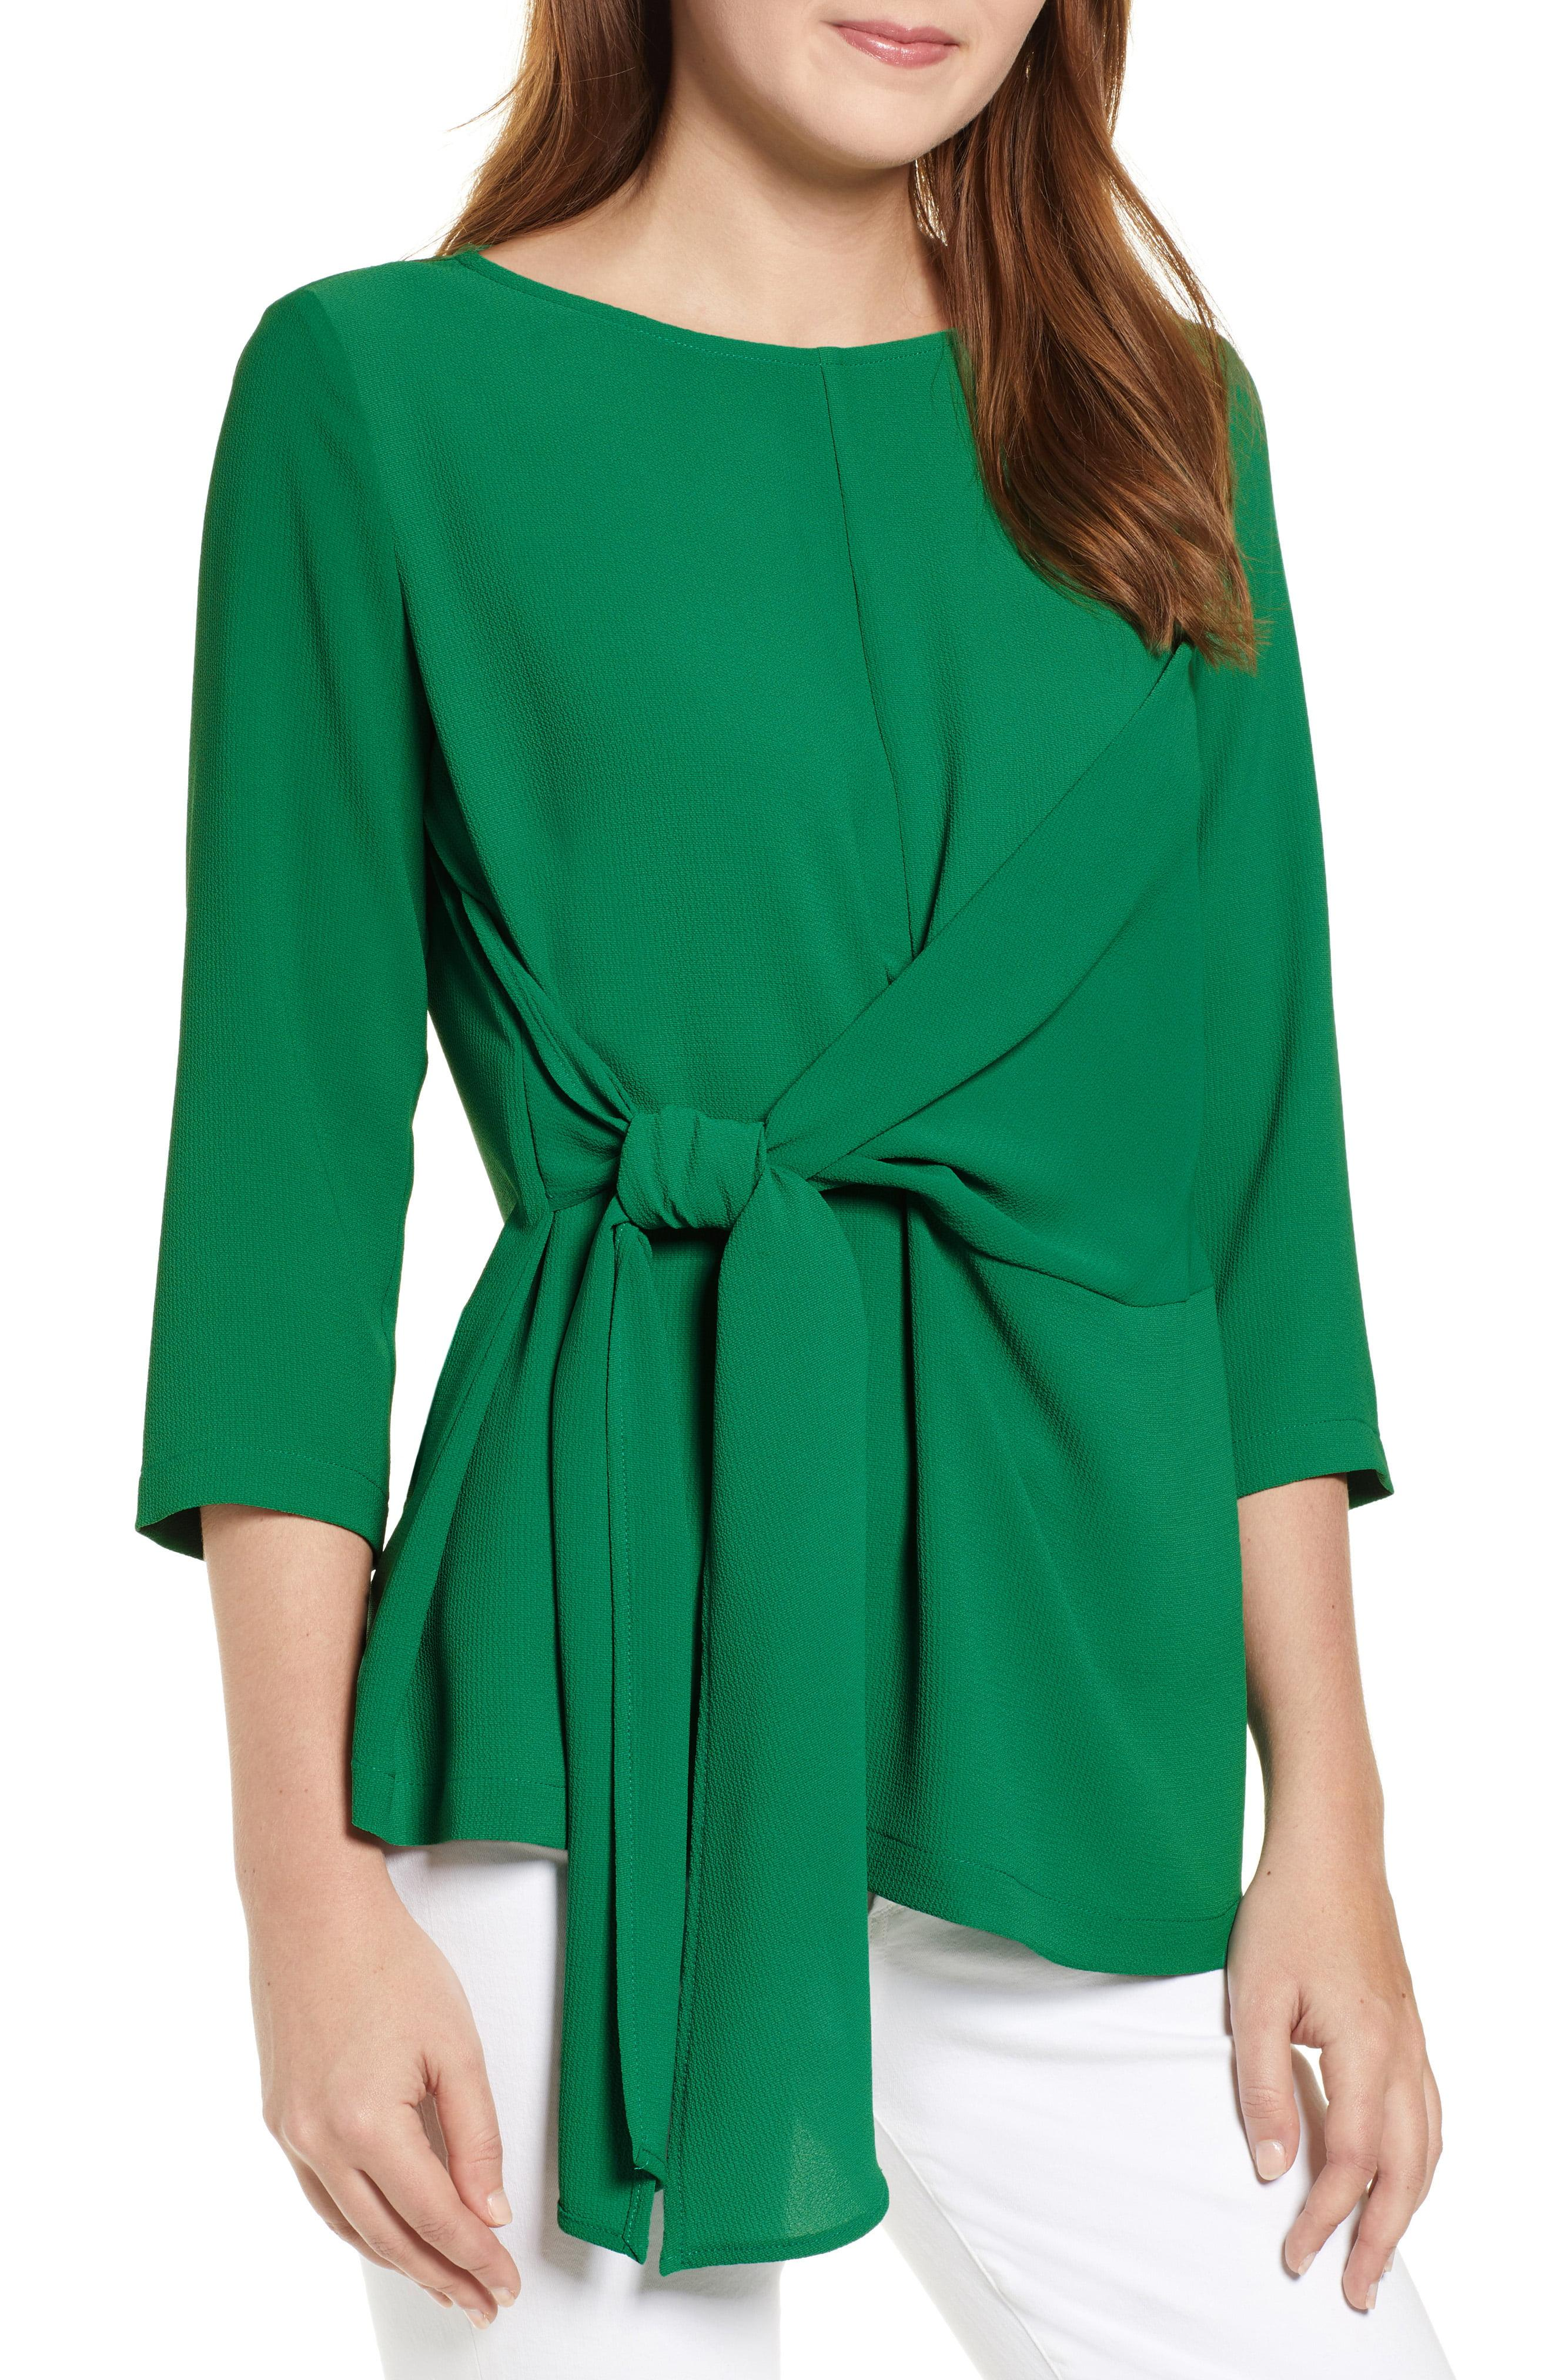 f9ee84a45f4db8 Lyst - Gibson X International Women s Day Hoang-kim Tie Front Crepe ...